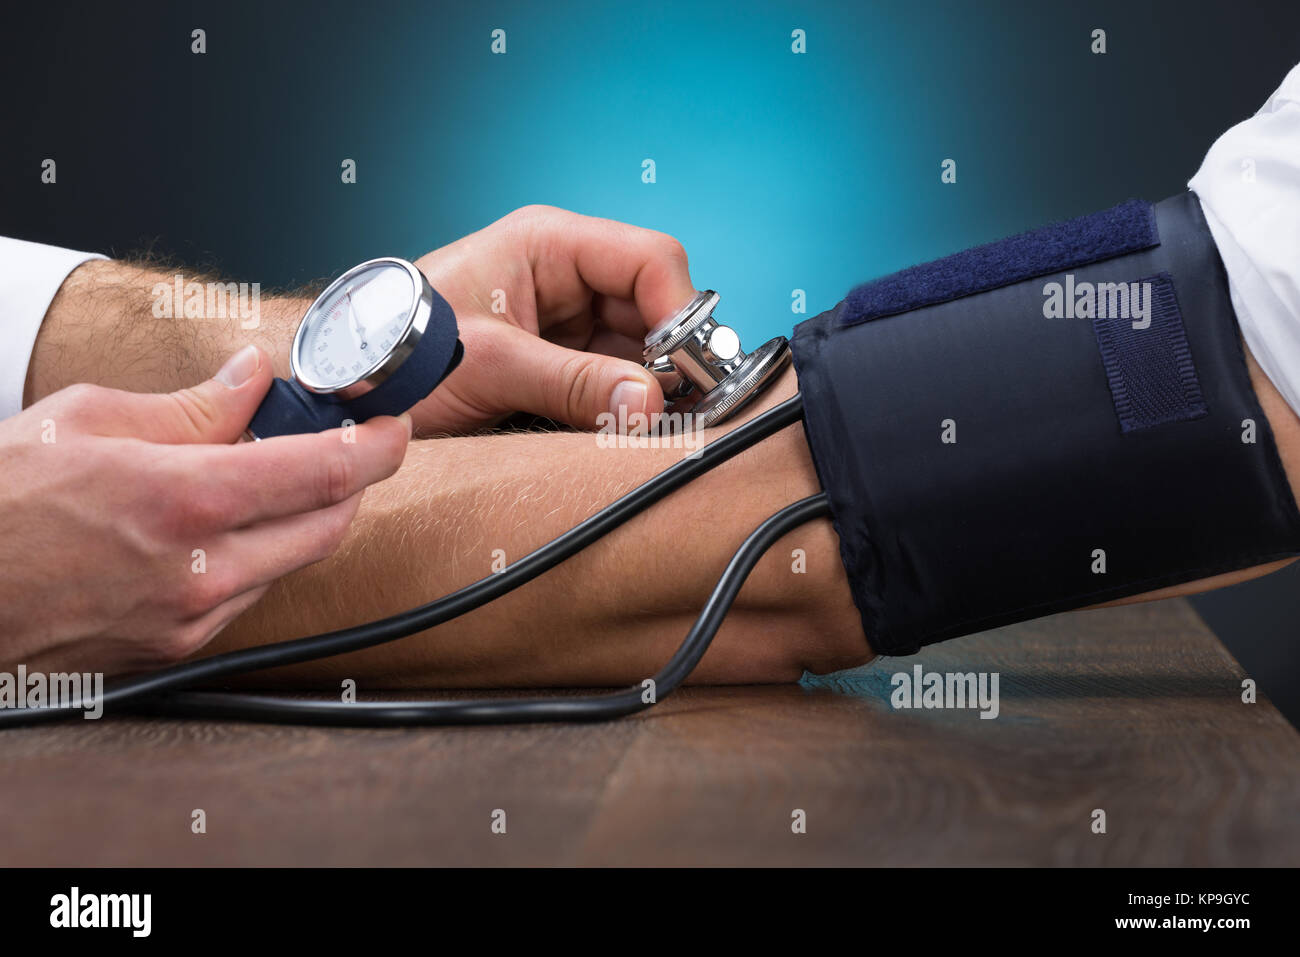 Doctor Checking Blood Pressure Of Patient At Table - Stock Image